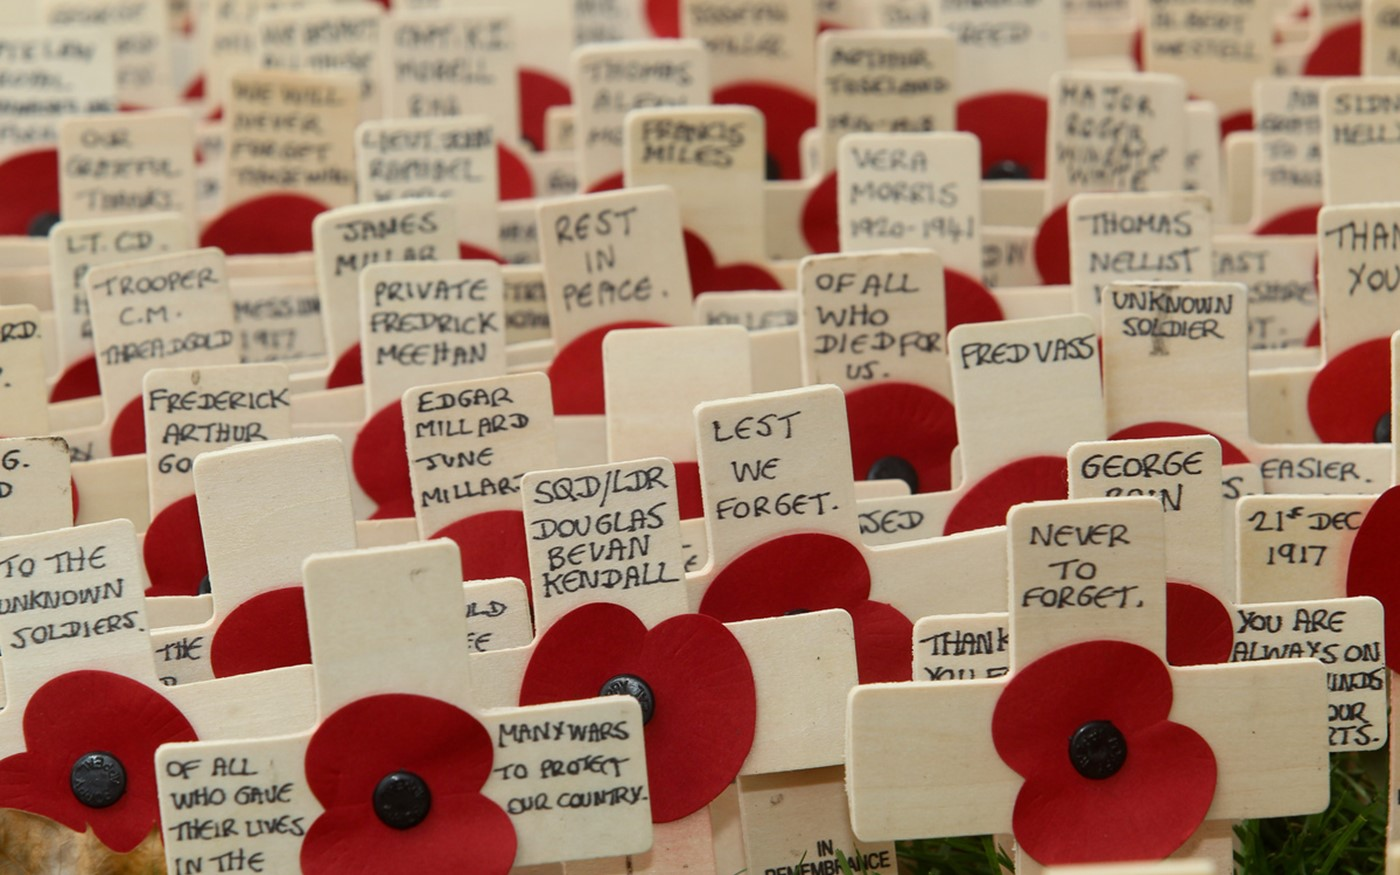 100,000 crosses in 388 plots make up this year's Field of Remembrance